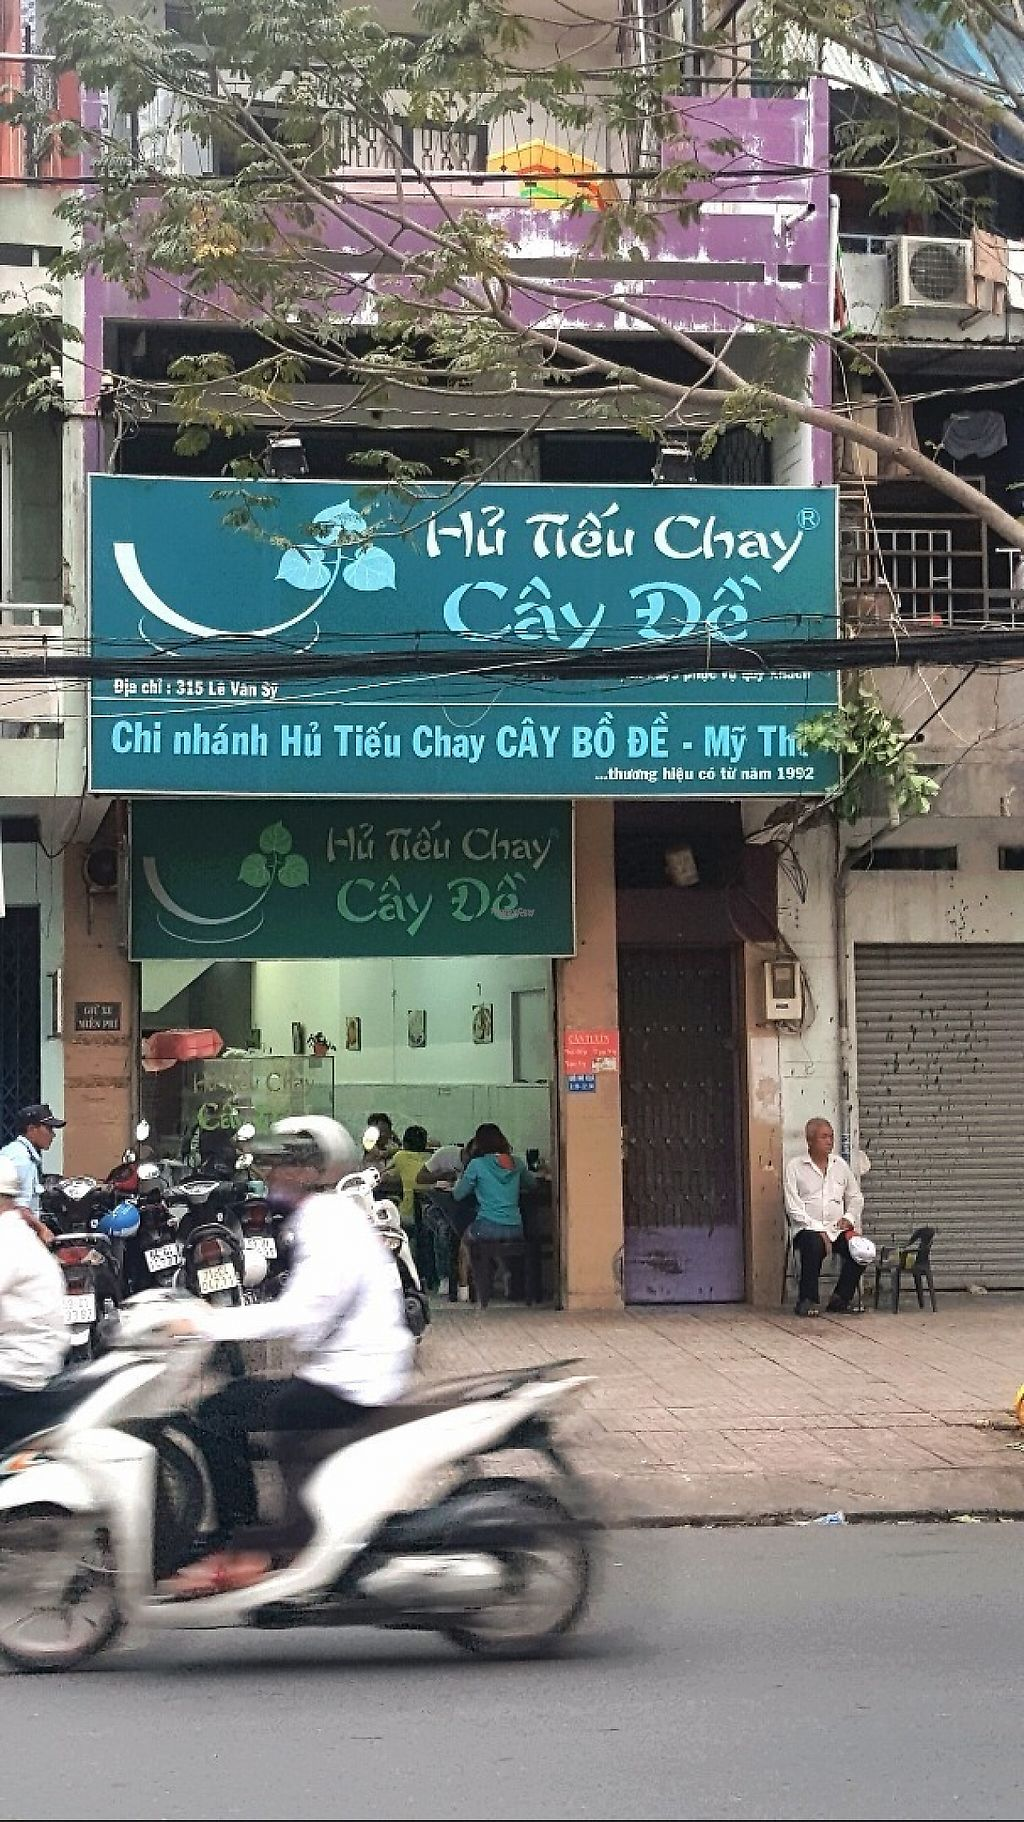 "Photo of Hu Tieu Chay - Cay De  by <a href=""/members/profile/Refinnej"">Refinnej</a> <br/>store front <br/> December 7, 2016  - <a href='/contact/abuse/image/83708/198108'>Report</a>"